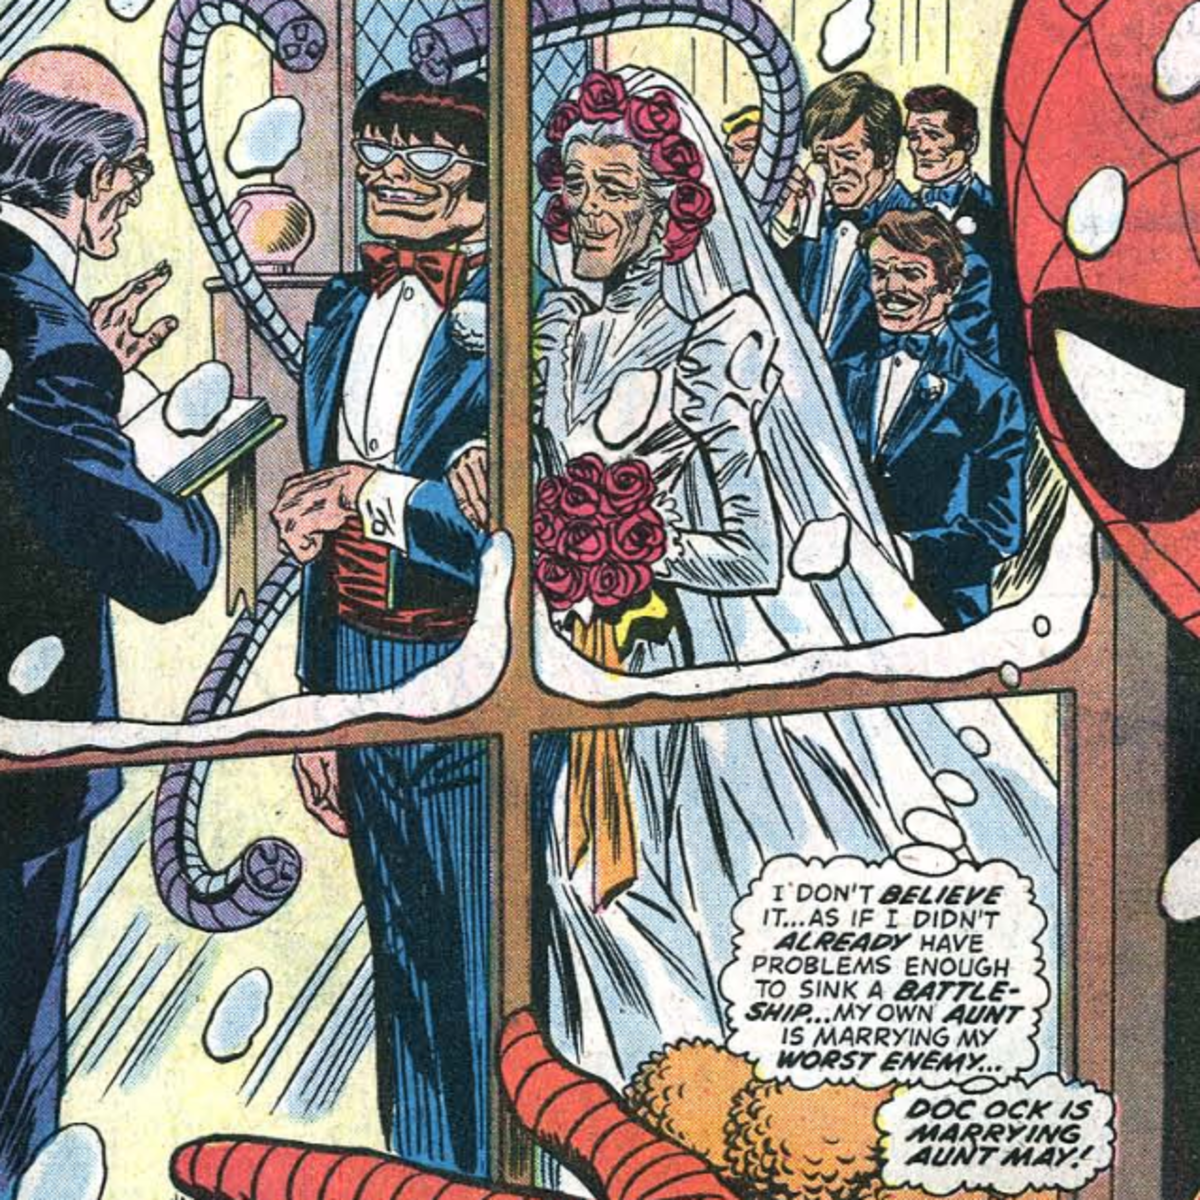 One of many sentences Peter thought he'd never have to say during his career as Spider-Man.